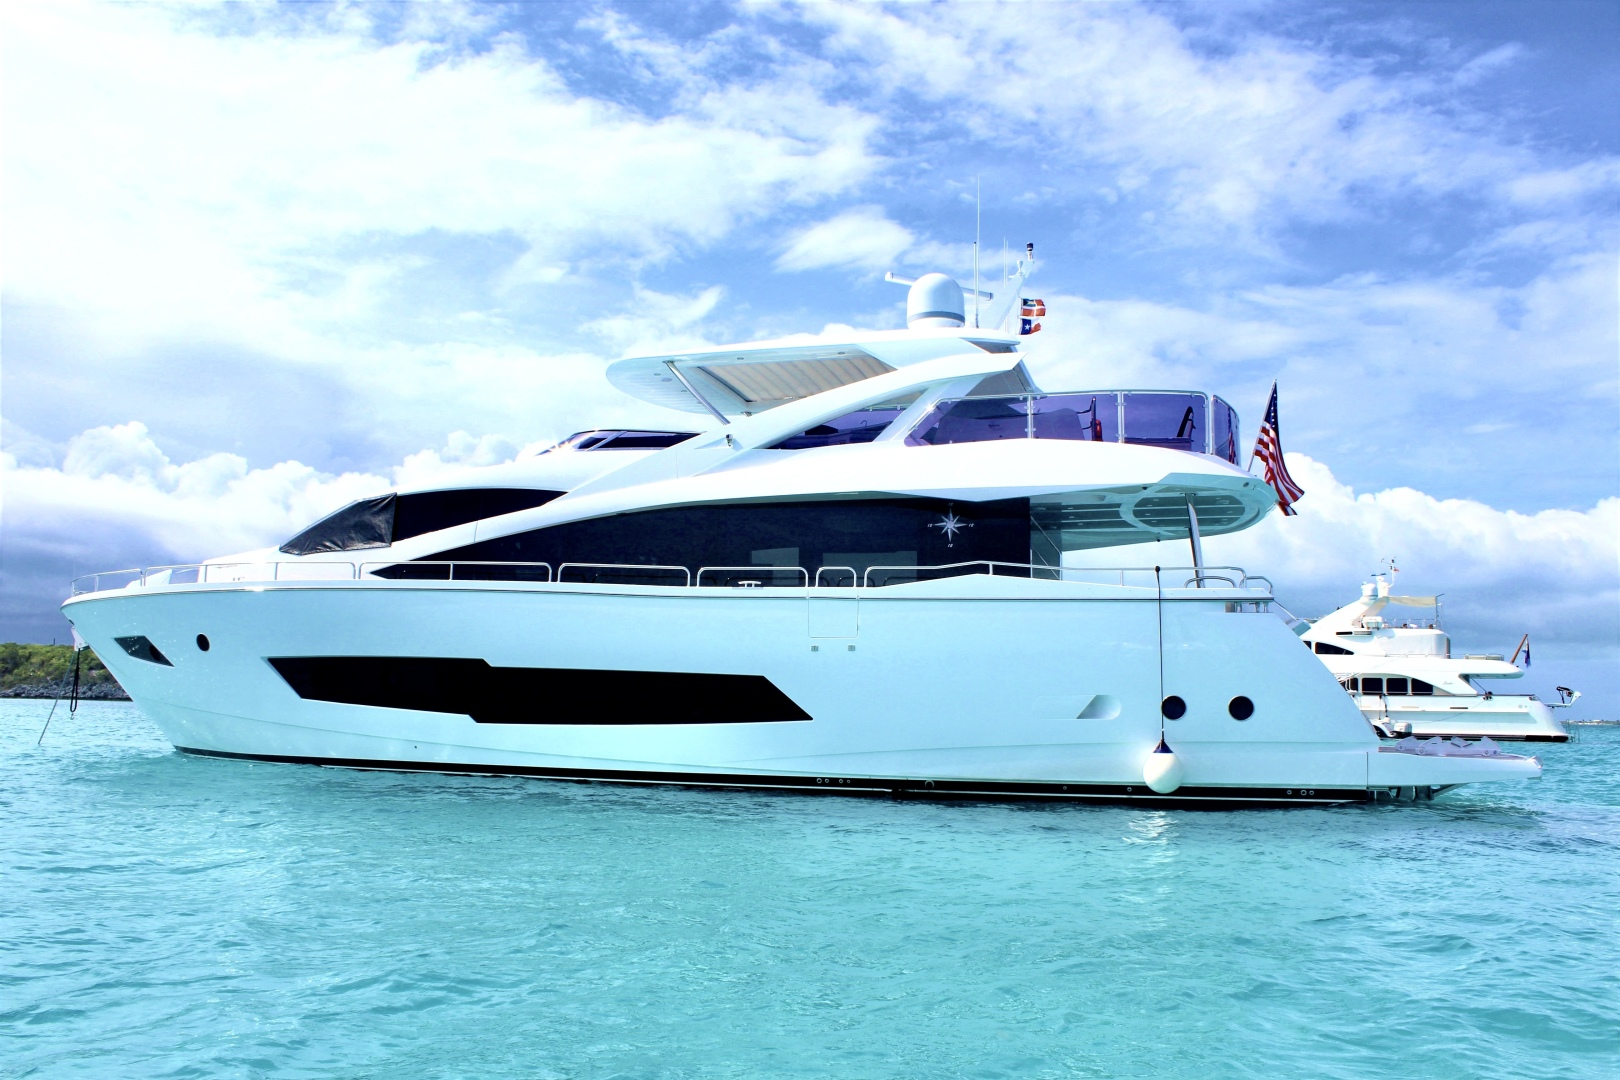 Sunseeker-86 Yacht 2019-Its Noon Somewhere Fort Lauderdale-Florida-United States-1556642 | Thumbnail